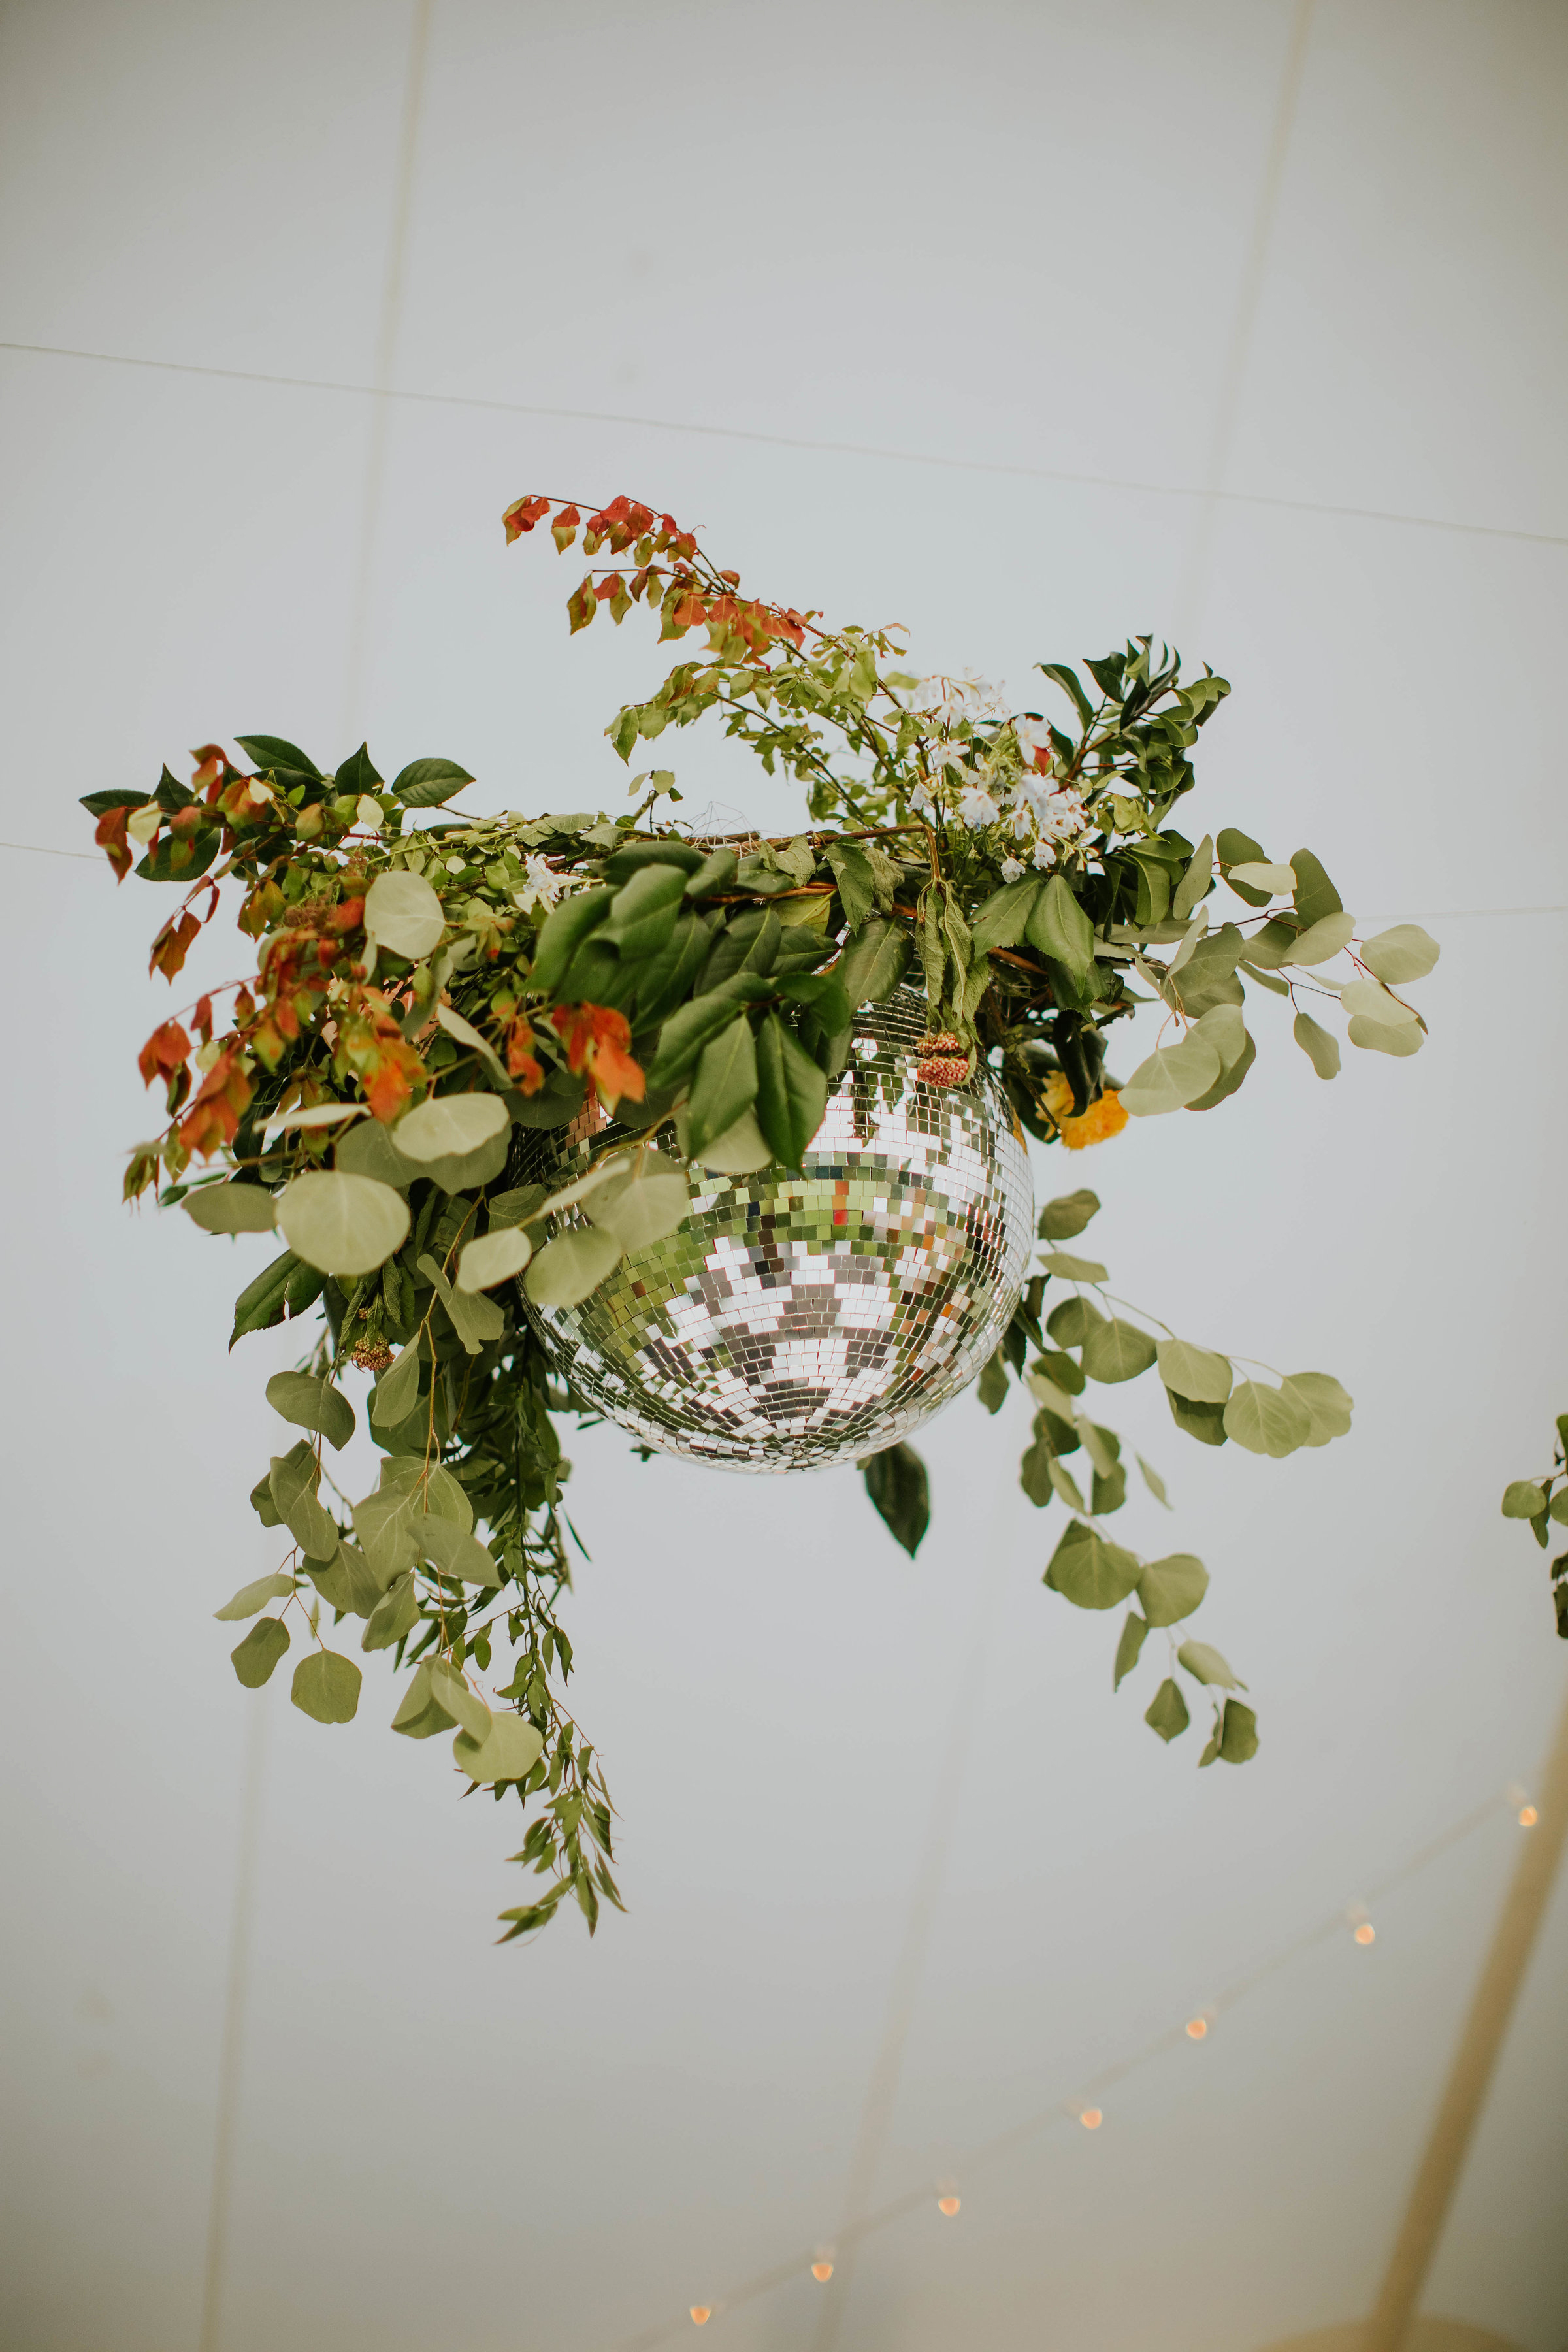 disco ball intertwined with greenery and florals